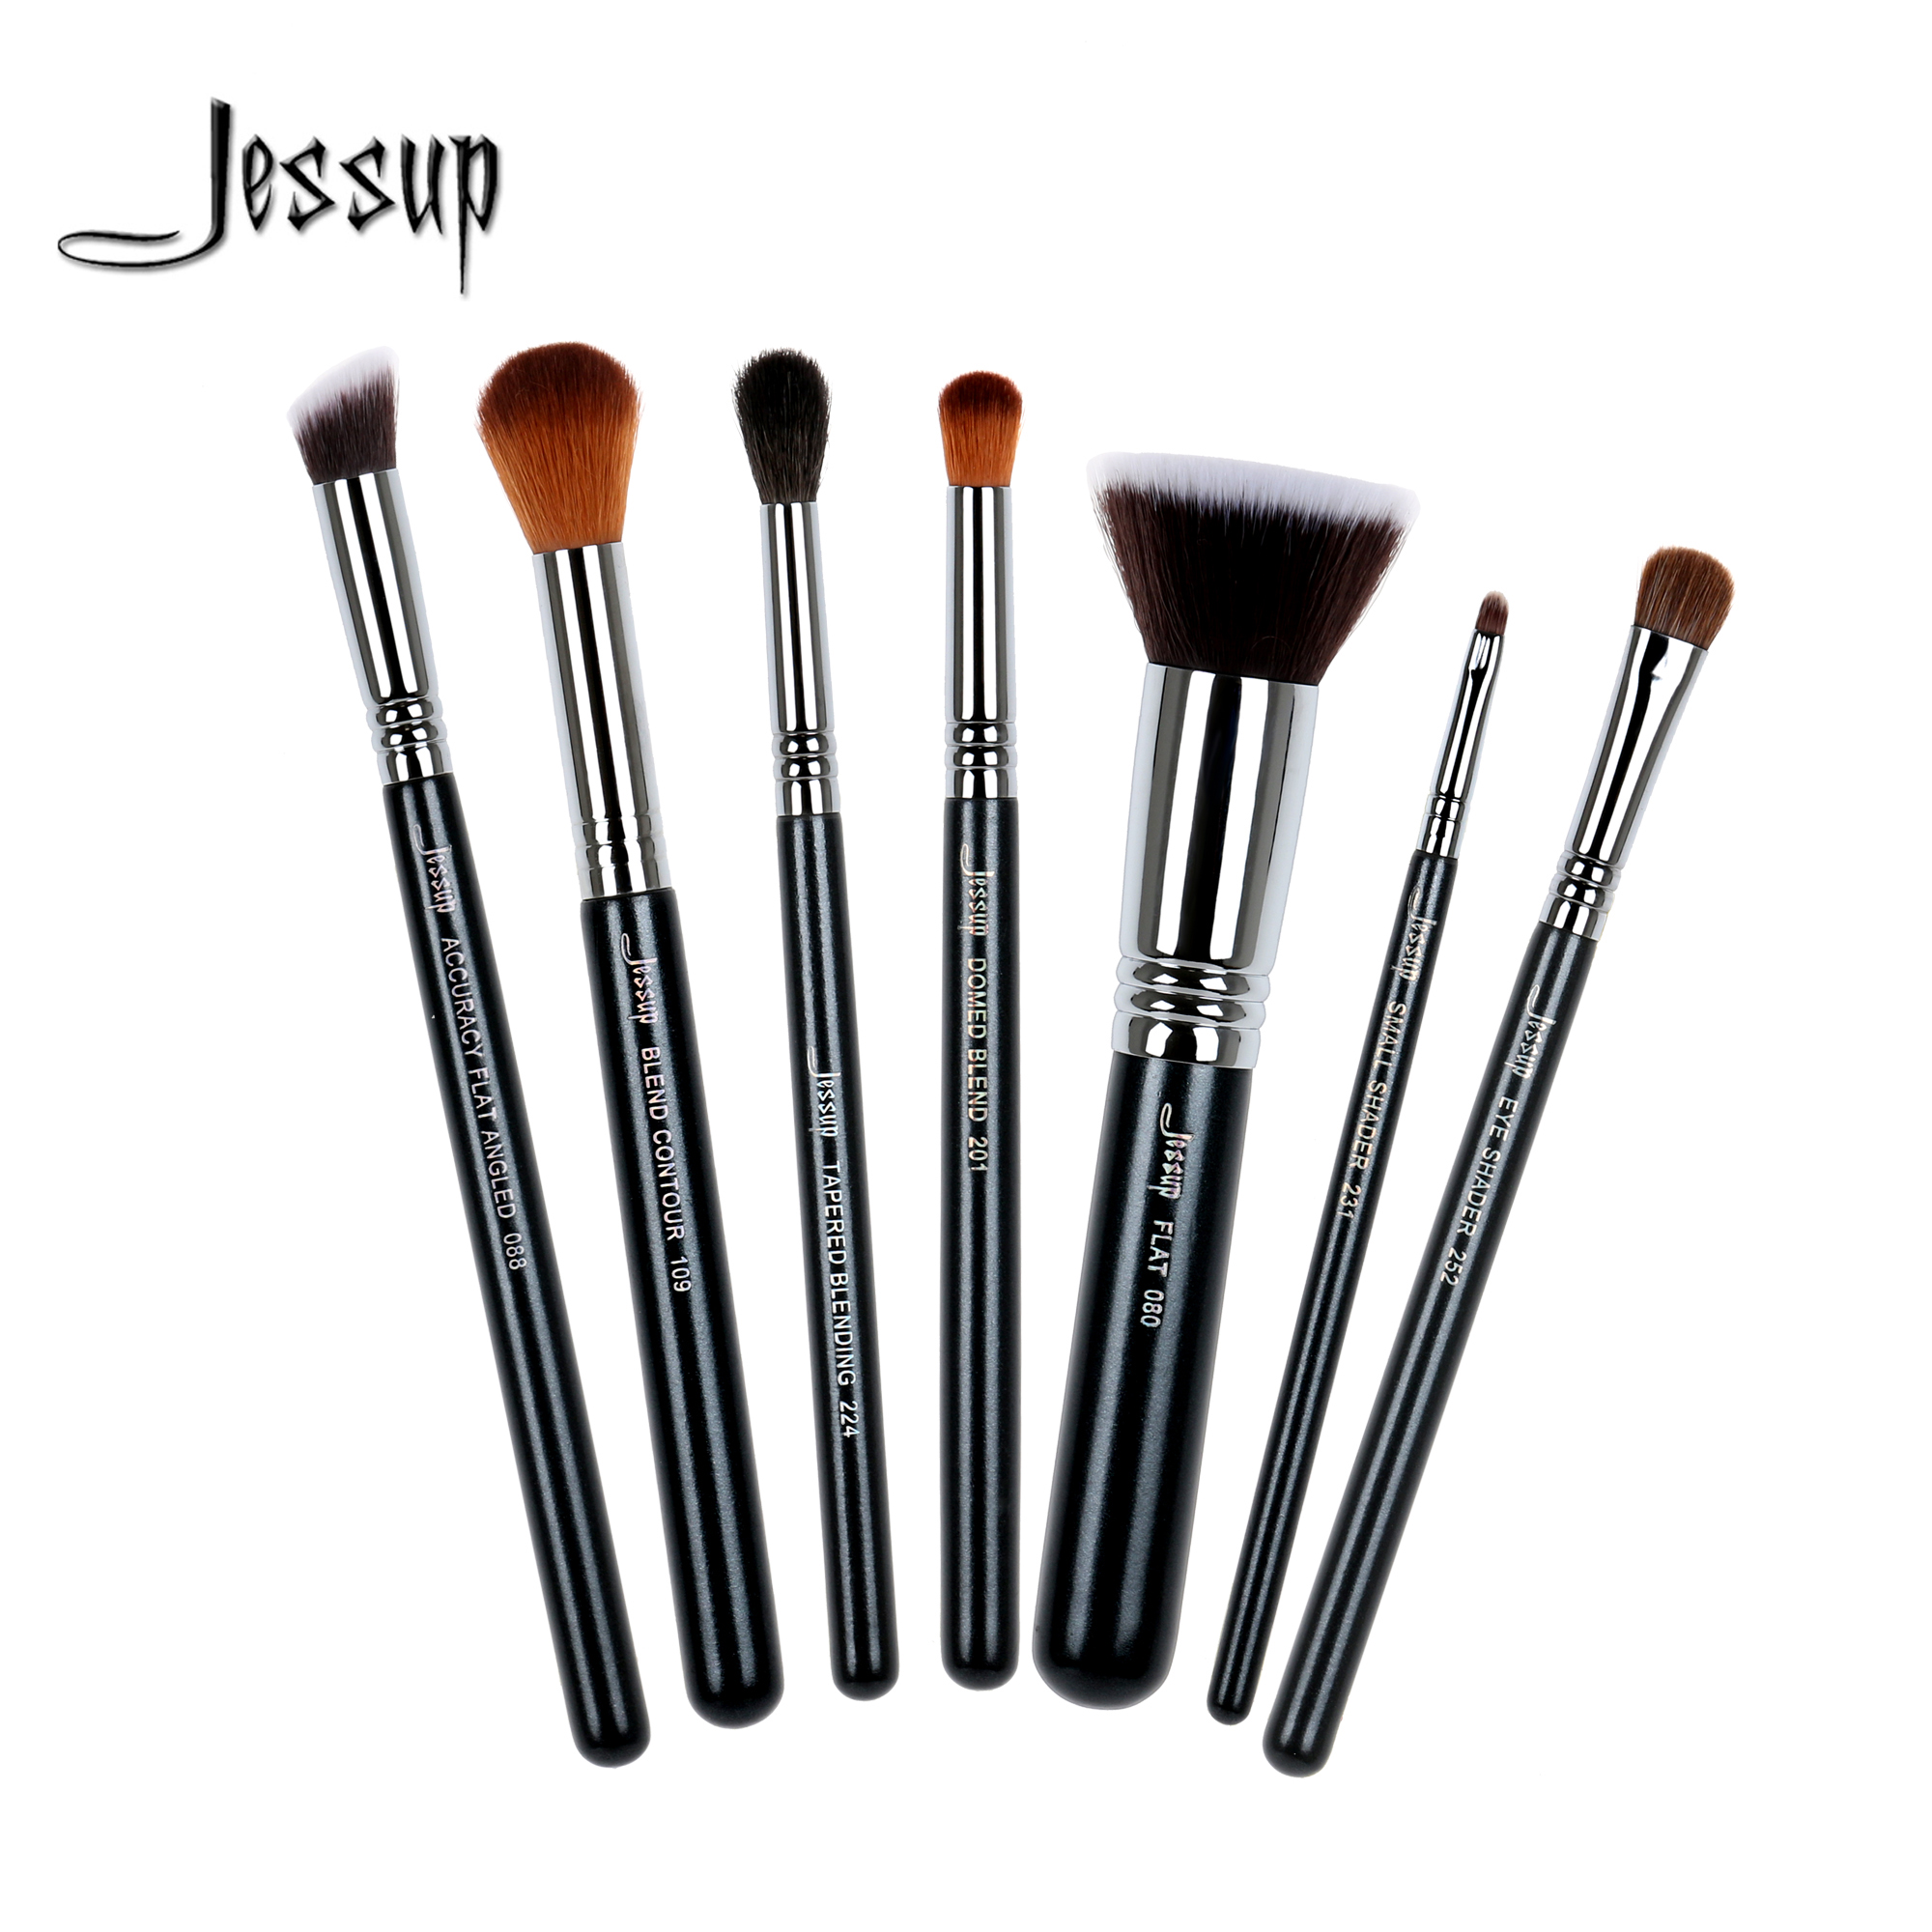 Jessup brushes 7Pcs Makeup Brush Set Kabuki Foundation Blend Contour Shader Eyeliner Powder Makeup Brushes Kit Tools T119 mantra подвесная люстра mantra mara chrome white 1640